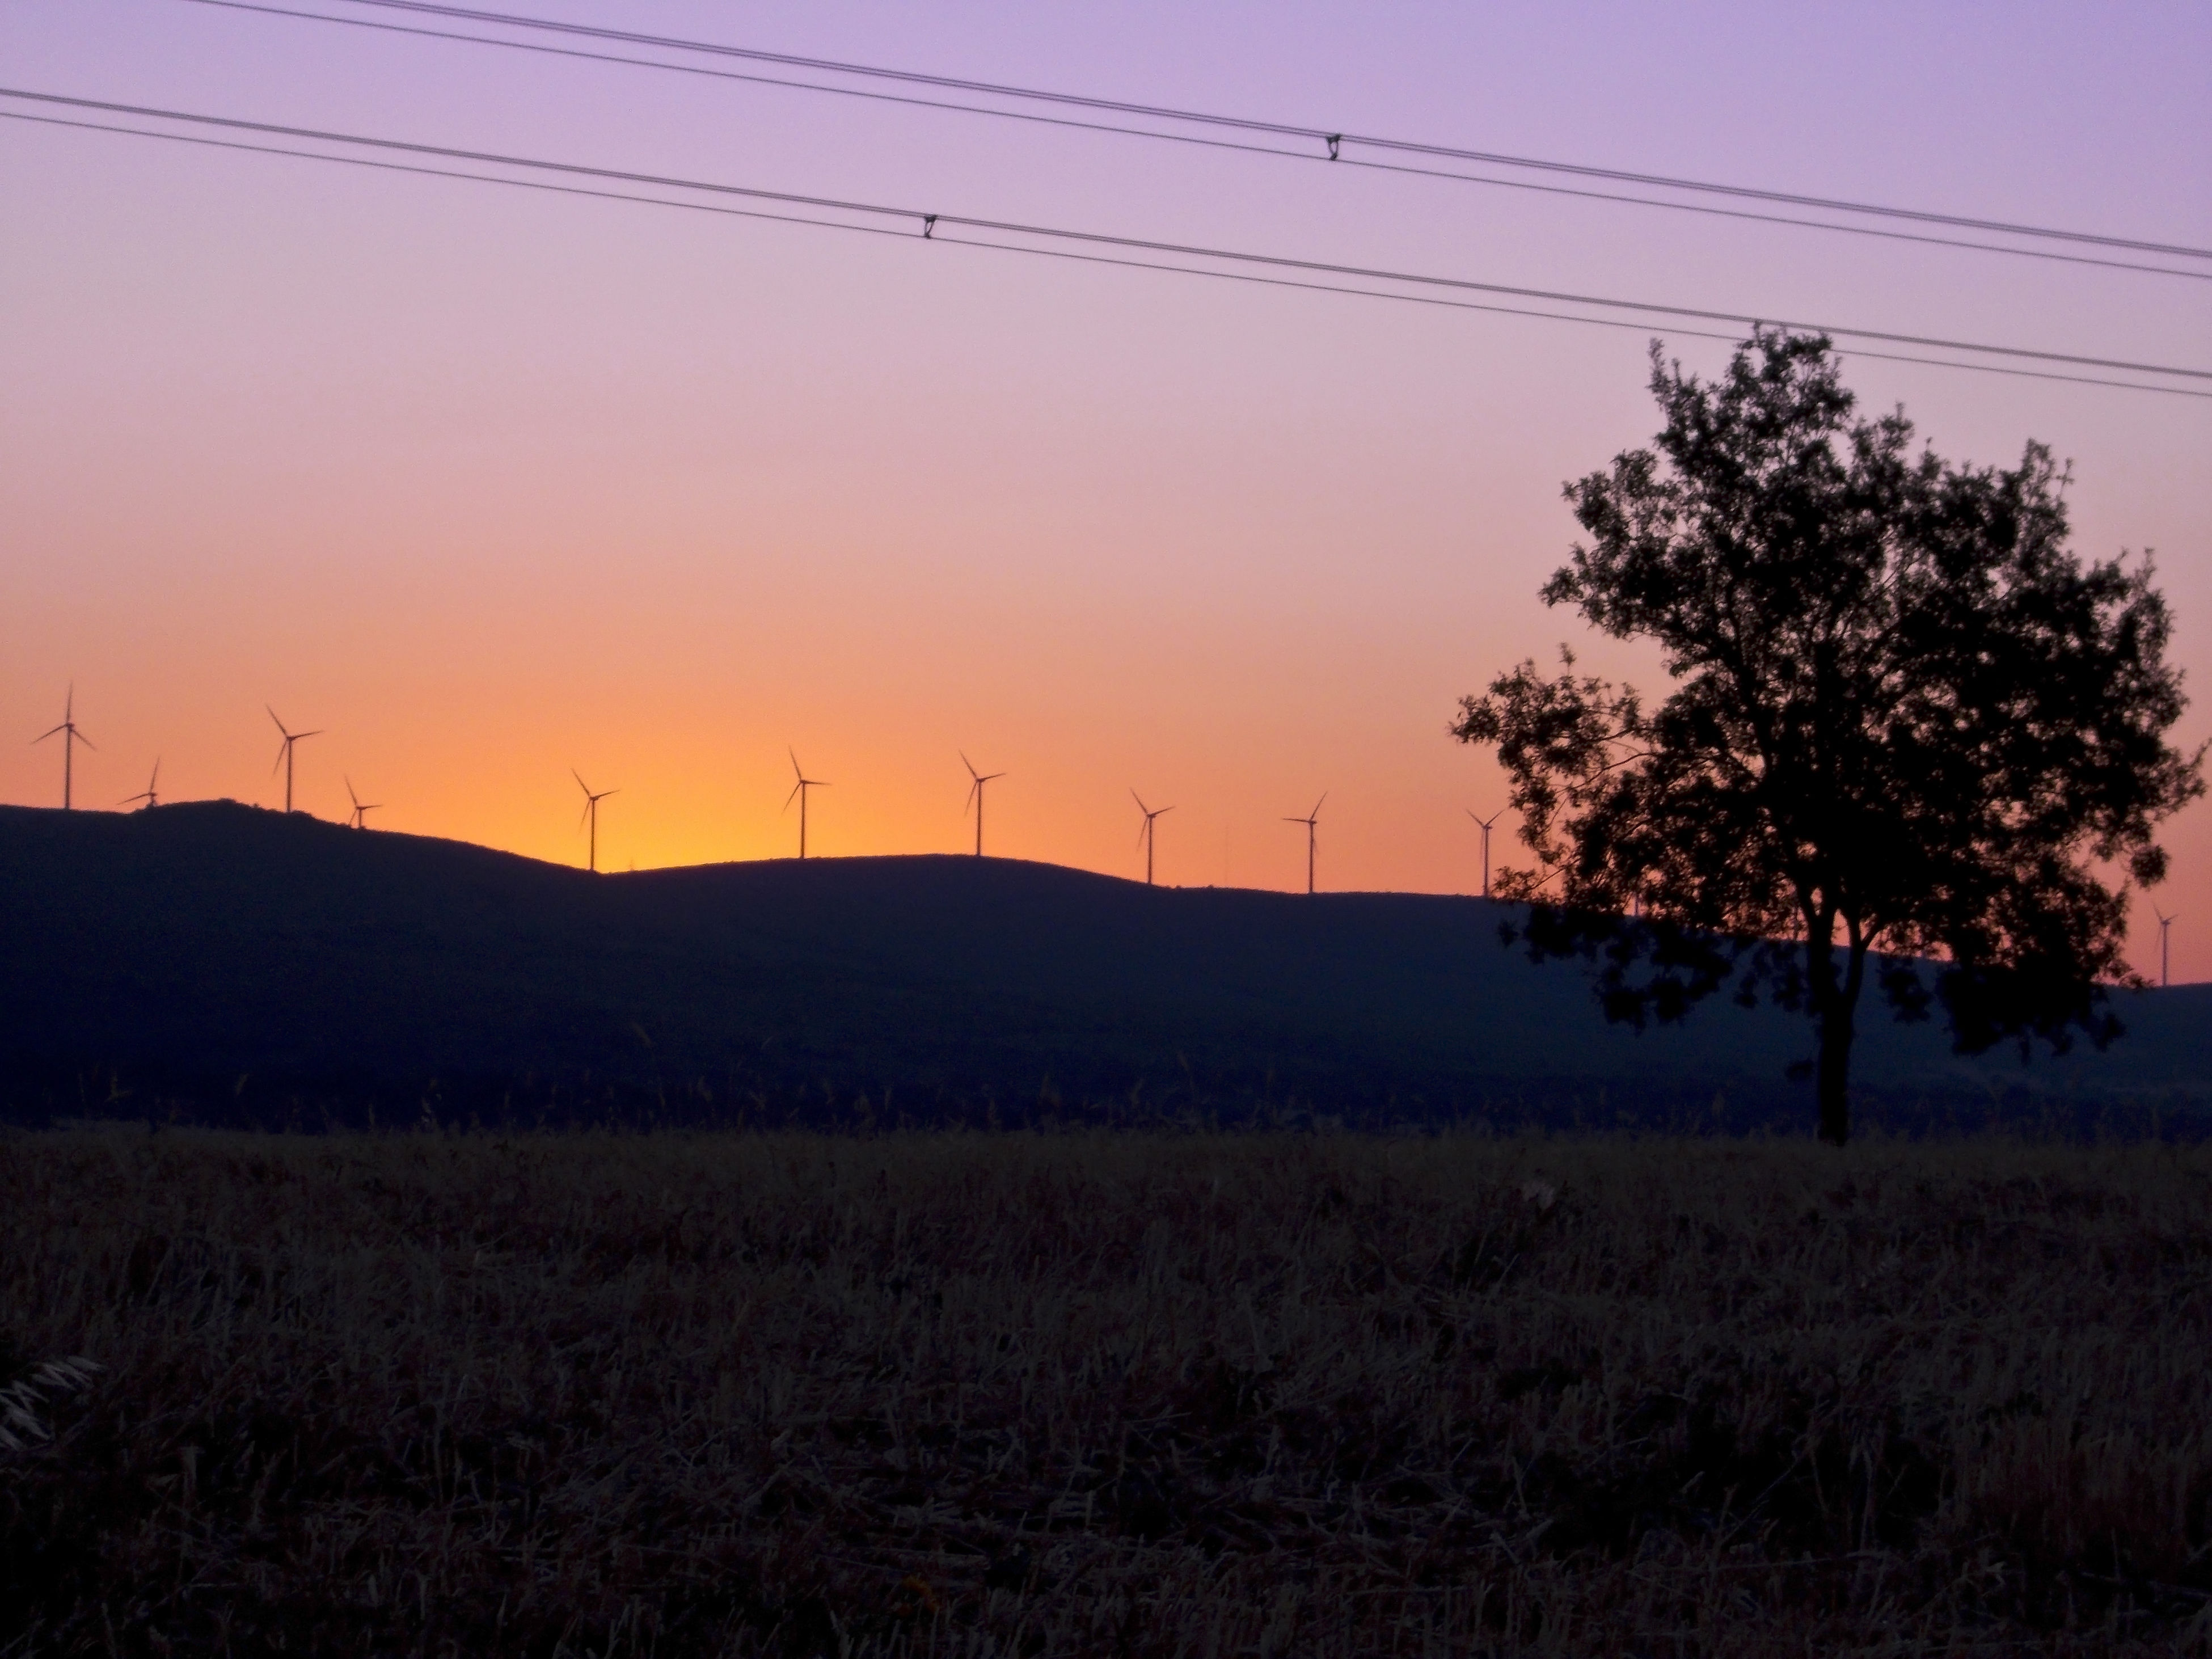 electricity pylon, power line, sunset, landscape, fuel and power generation, electricity, power supply, tranquility, silhouette, tranquil scene, field, clear sky, scenics, technology, nature, beauty in nature, cable, connection, sky, rural scene